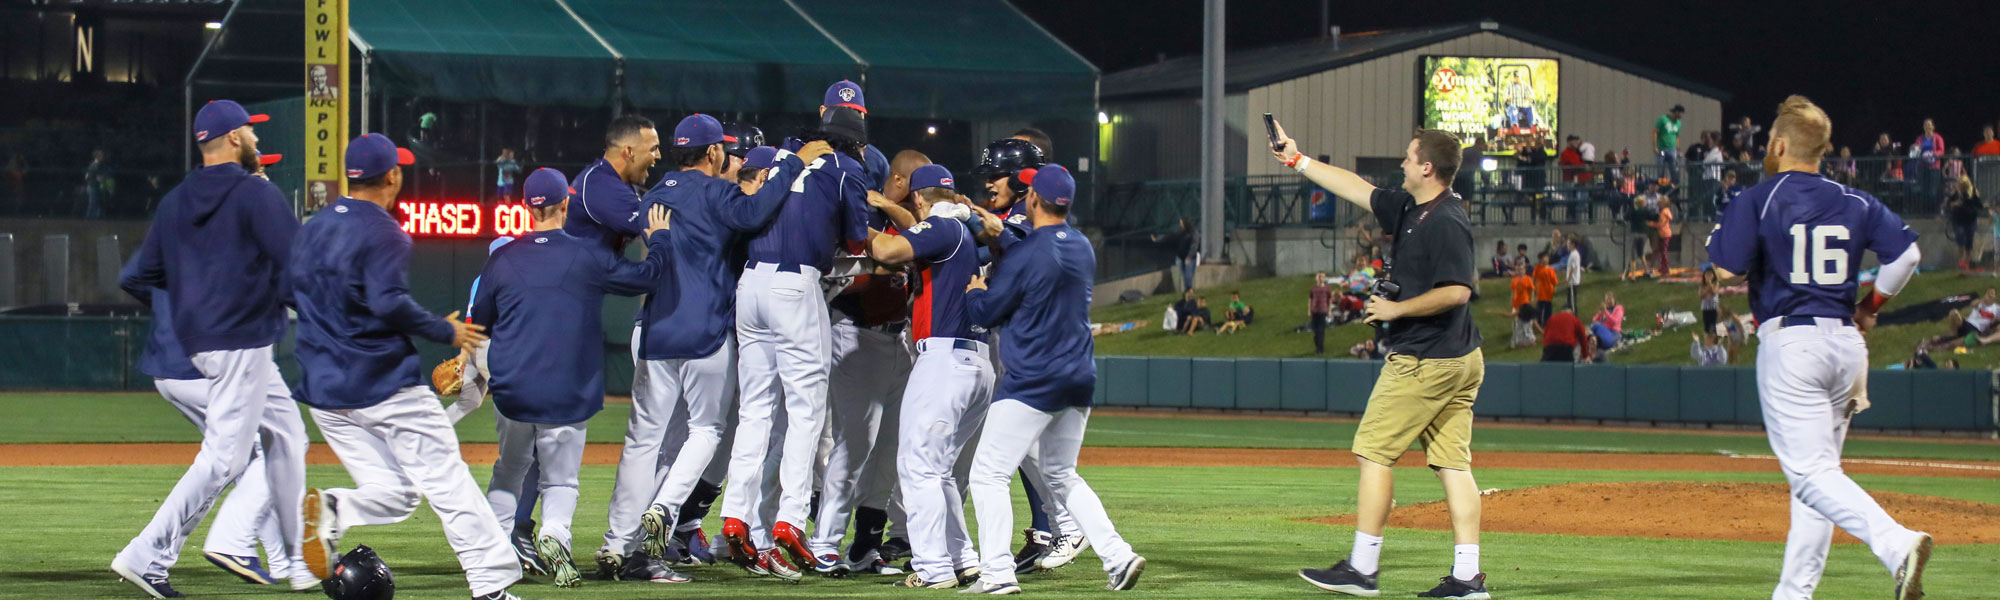 Saltdogs Season Recap